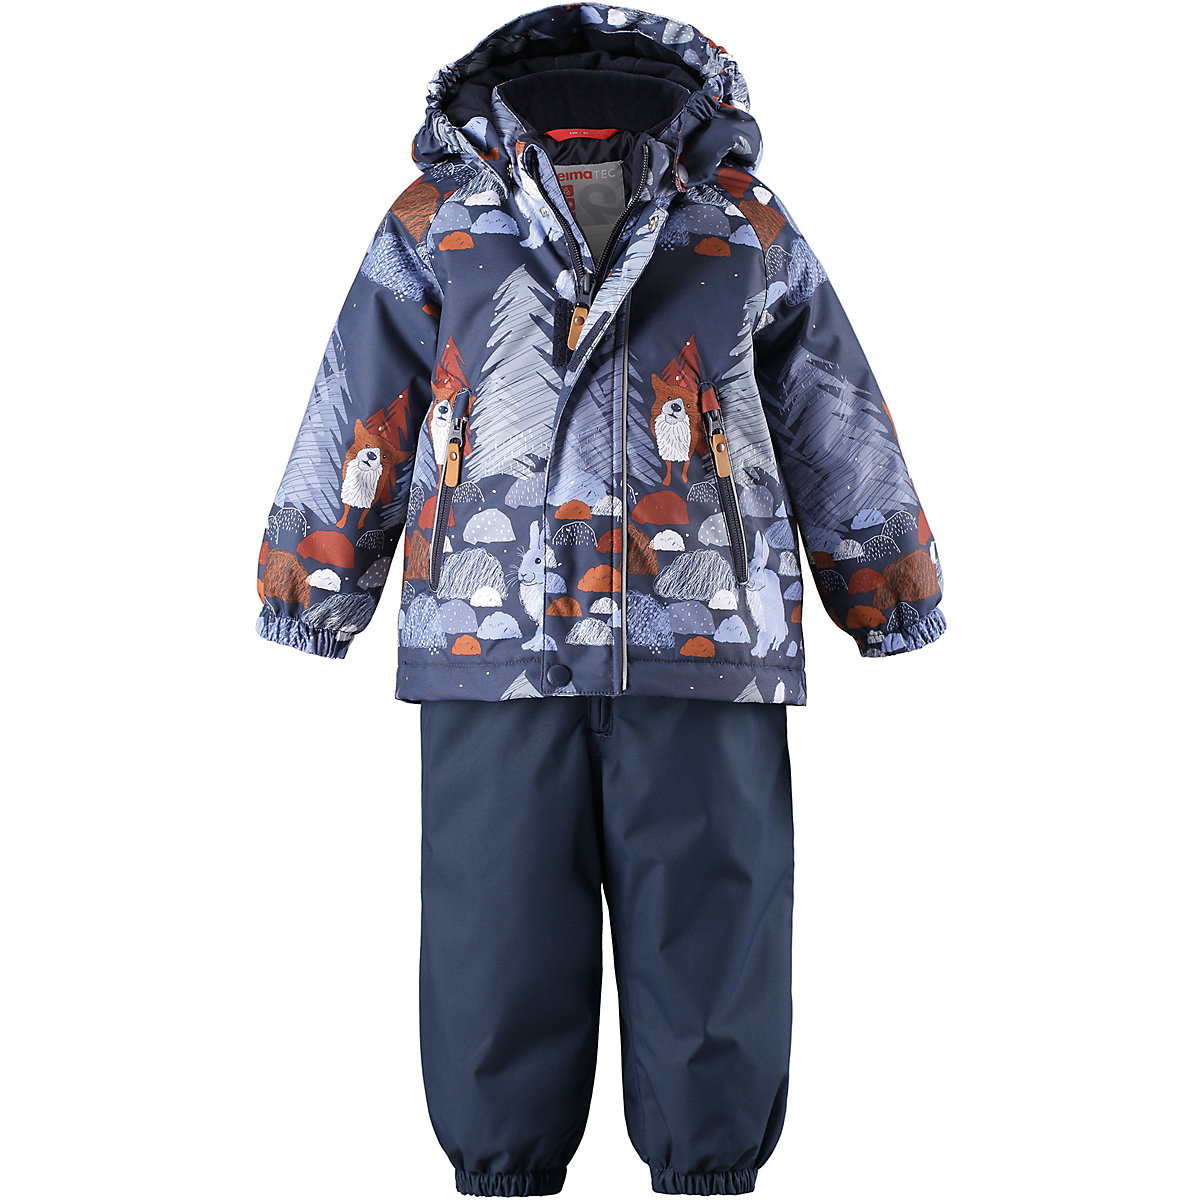 REIMA Childrens Sets 8688723 for boys children clothing winter stuff Suit set Jacket pants 2016 winter children s clothing set kids ski suit overalls baby girls down coat warm snowsuits jackets vest pants 3pcs set